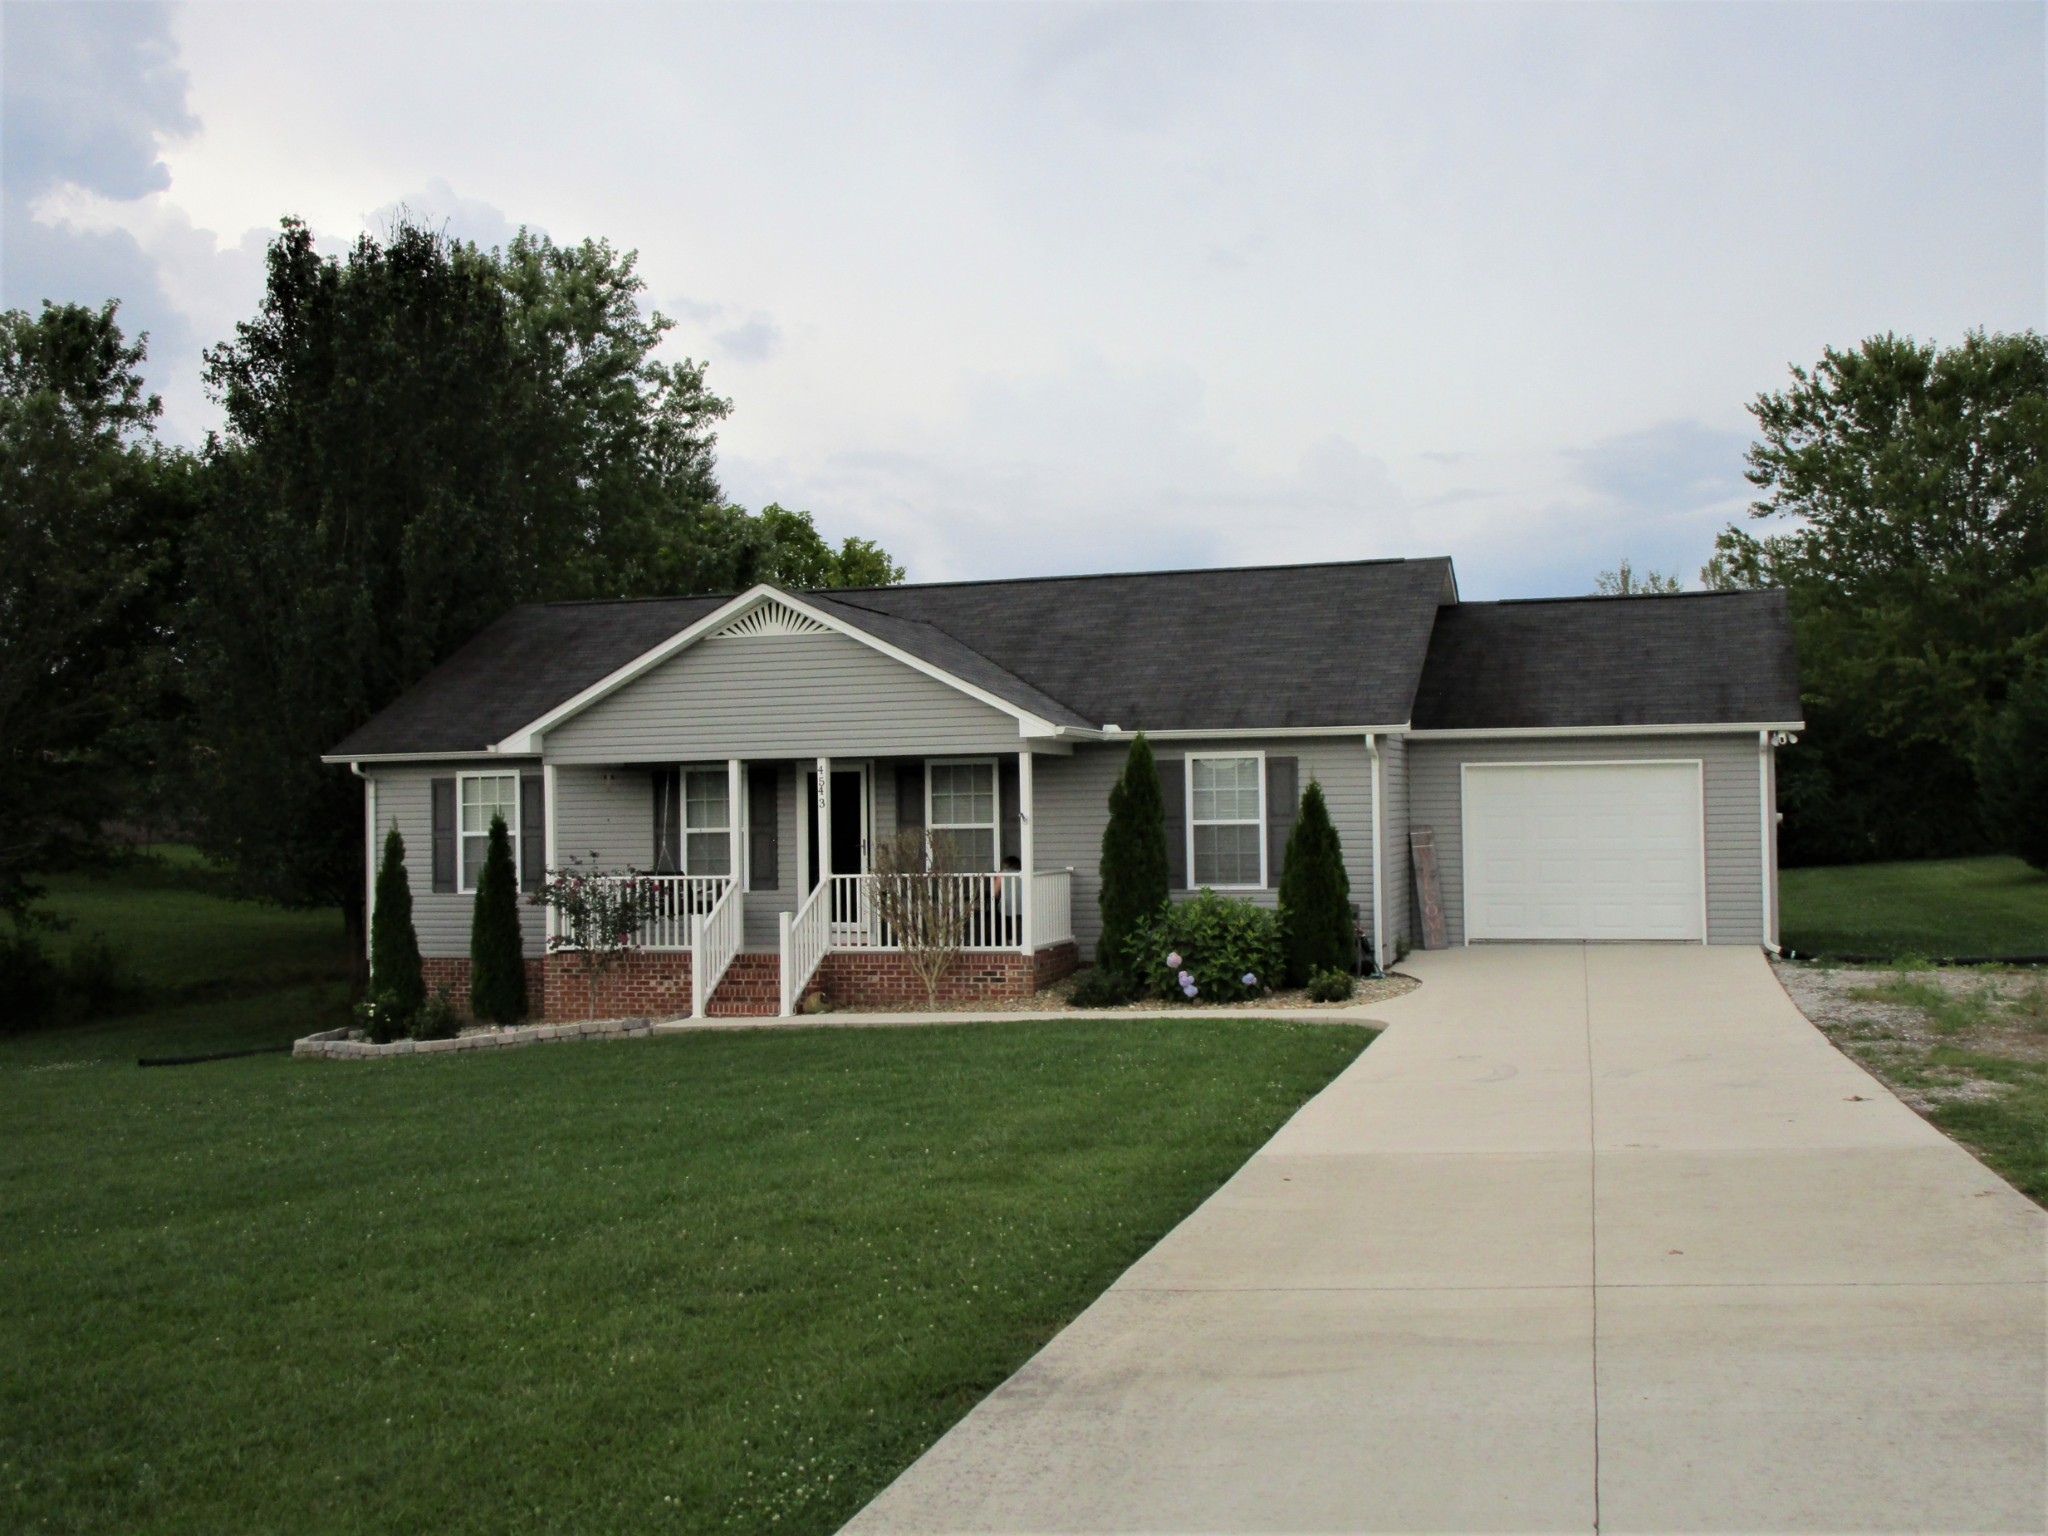 4543 Ewing Dr Property Photo - Baxter, TN real estate listing